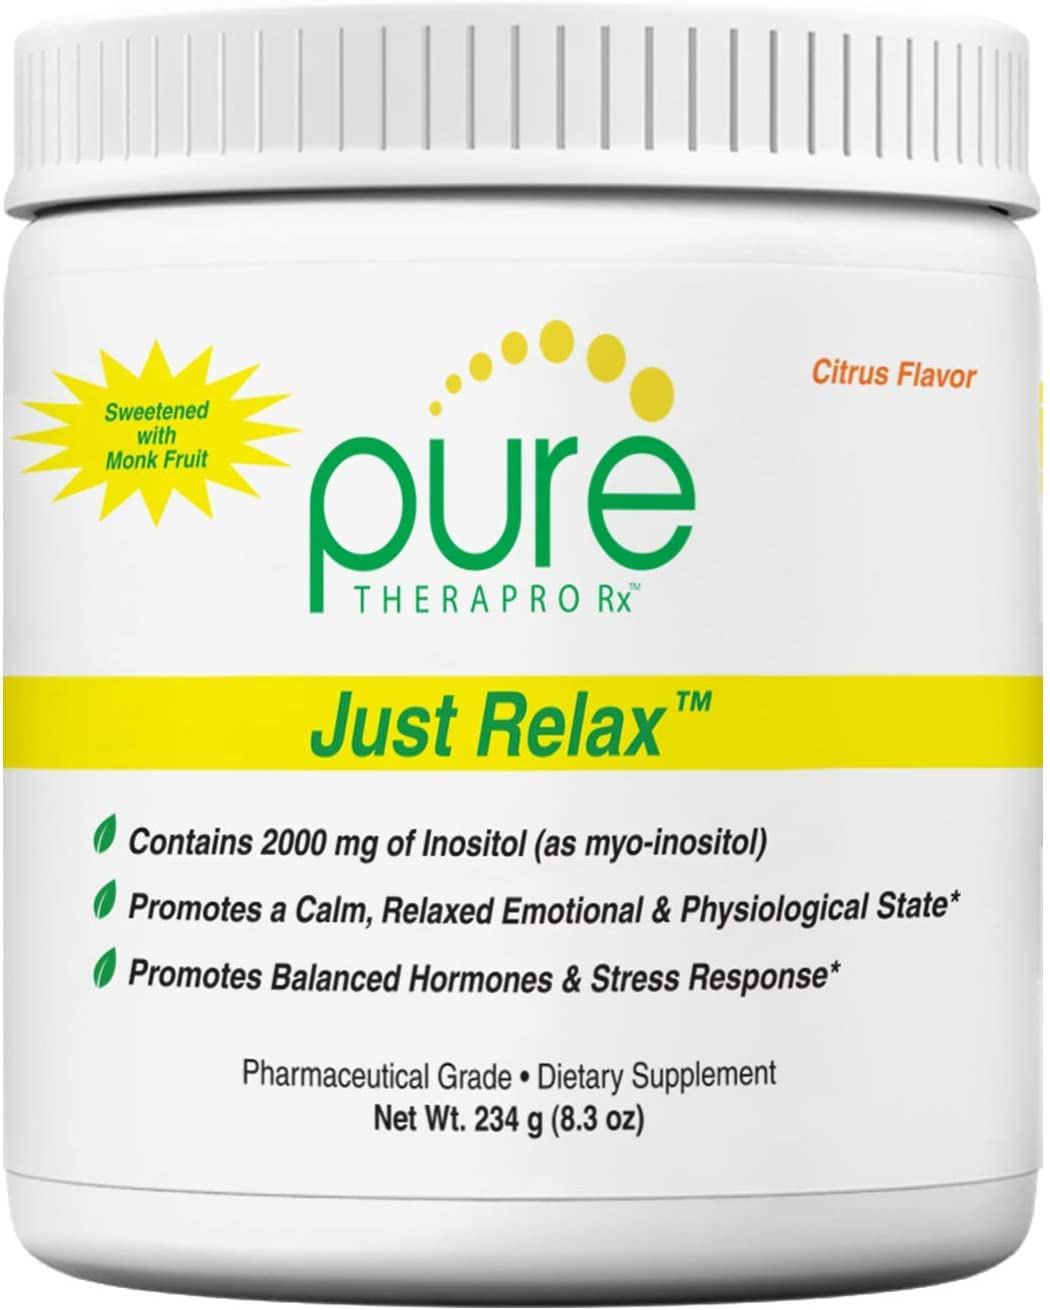 Just Relax – Citrus 60 Servings Supports Relaxed Mood, Healthy Blood Pressure, Emotional Wellness, Hormonal Balance* Myo-inositol Di-Magnesium Malate, GABA, Taurine, L-Theanine Suntheanine